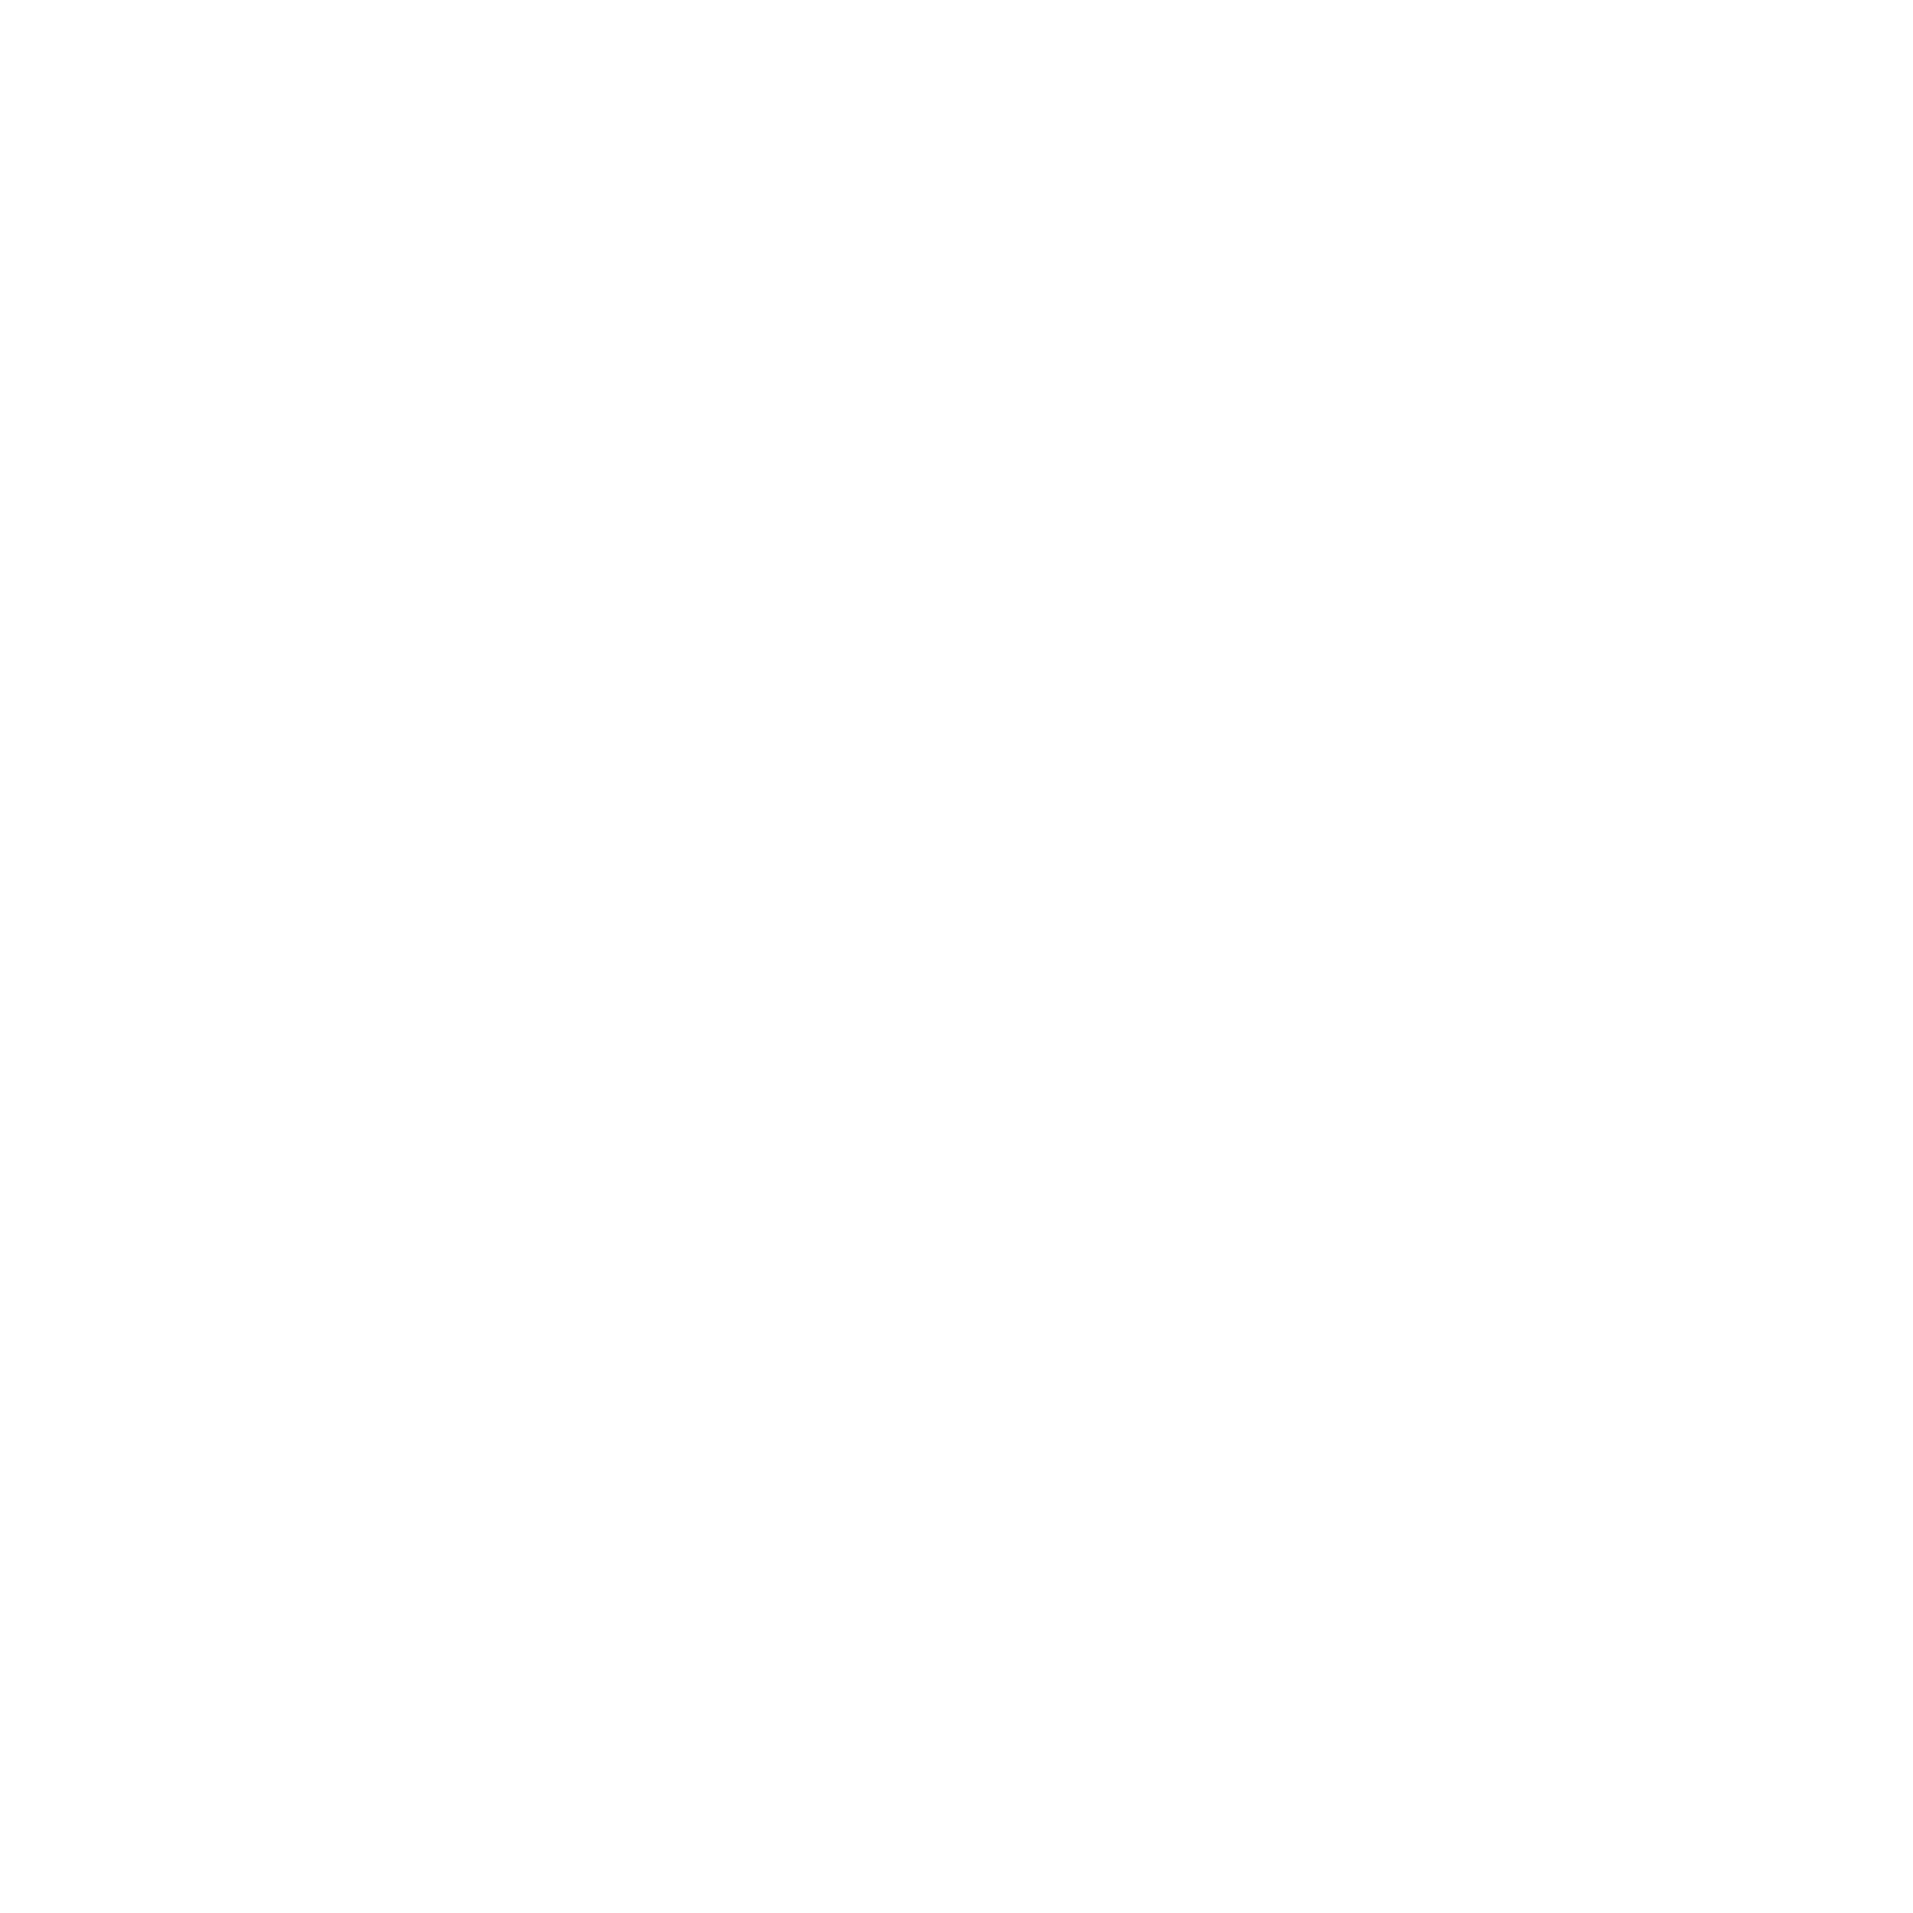 הום סטיילינג , אופנה , סטייל weekend markets